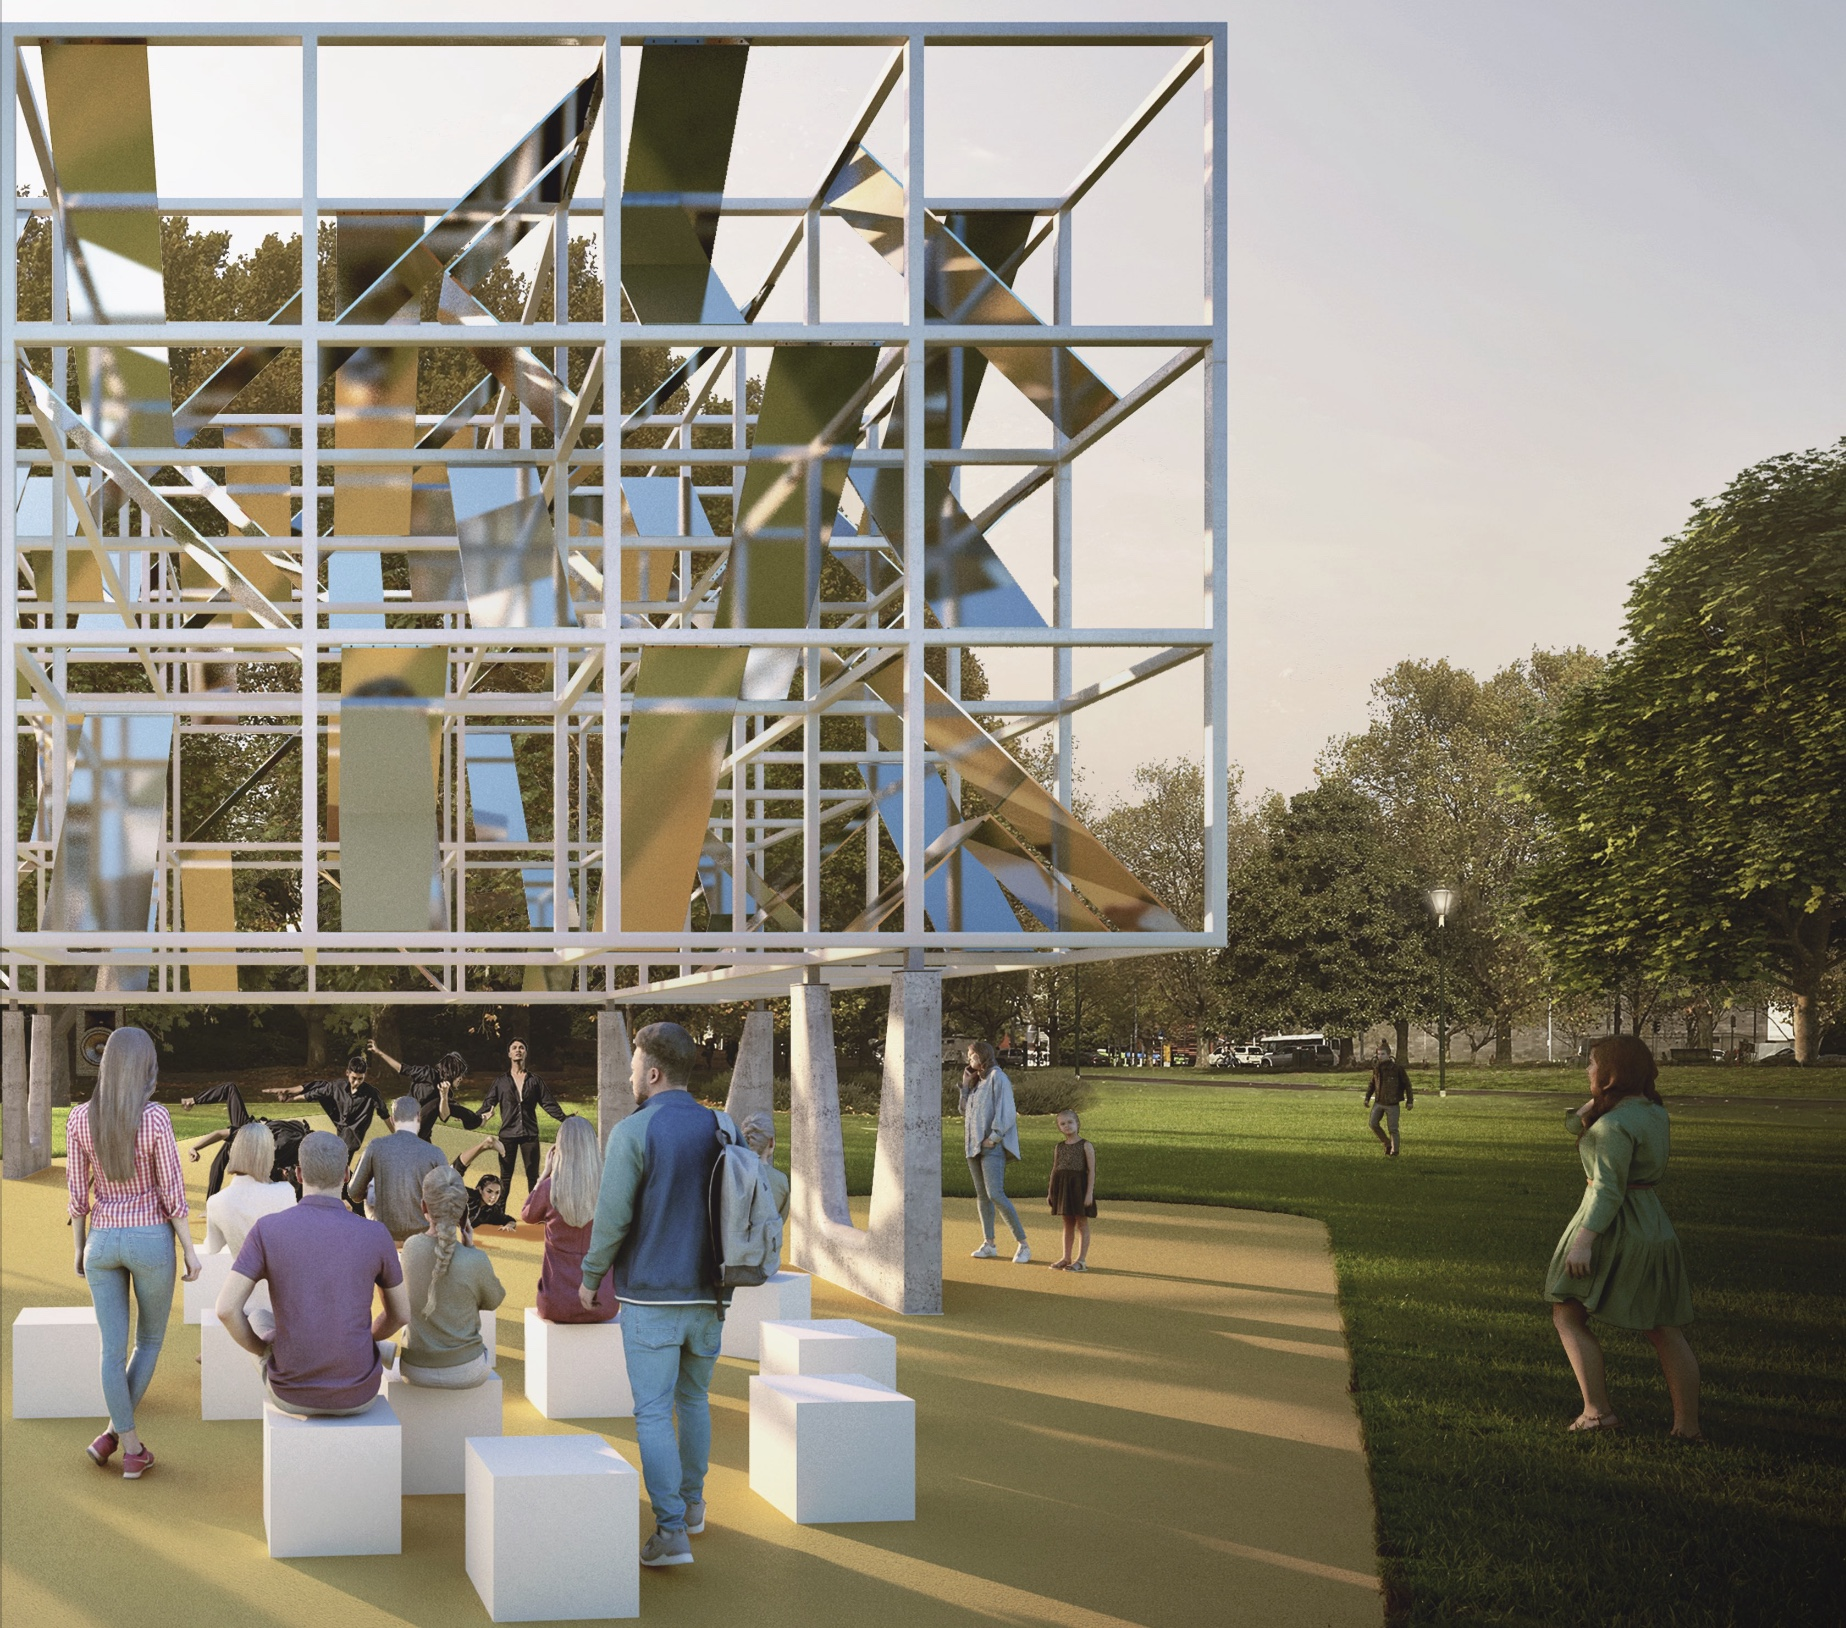 Want to be part of the MPavilion 2021 program?